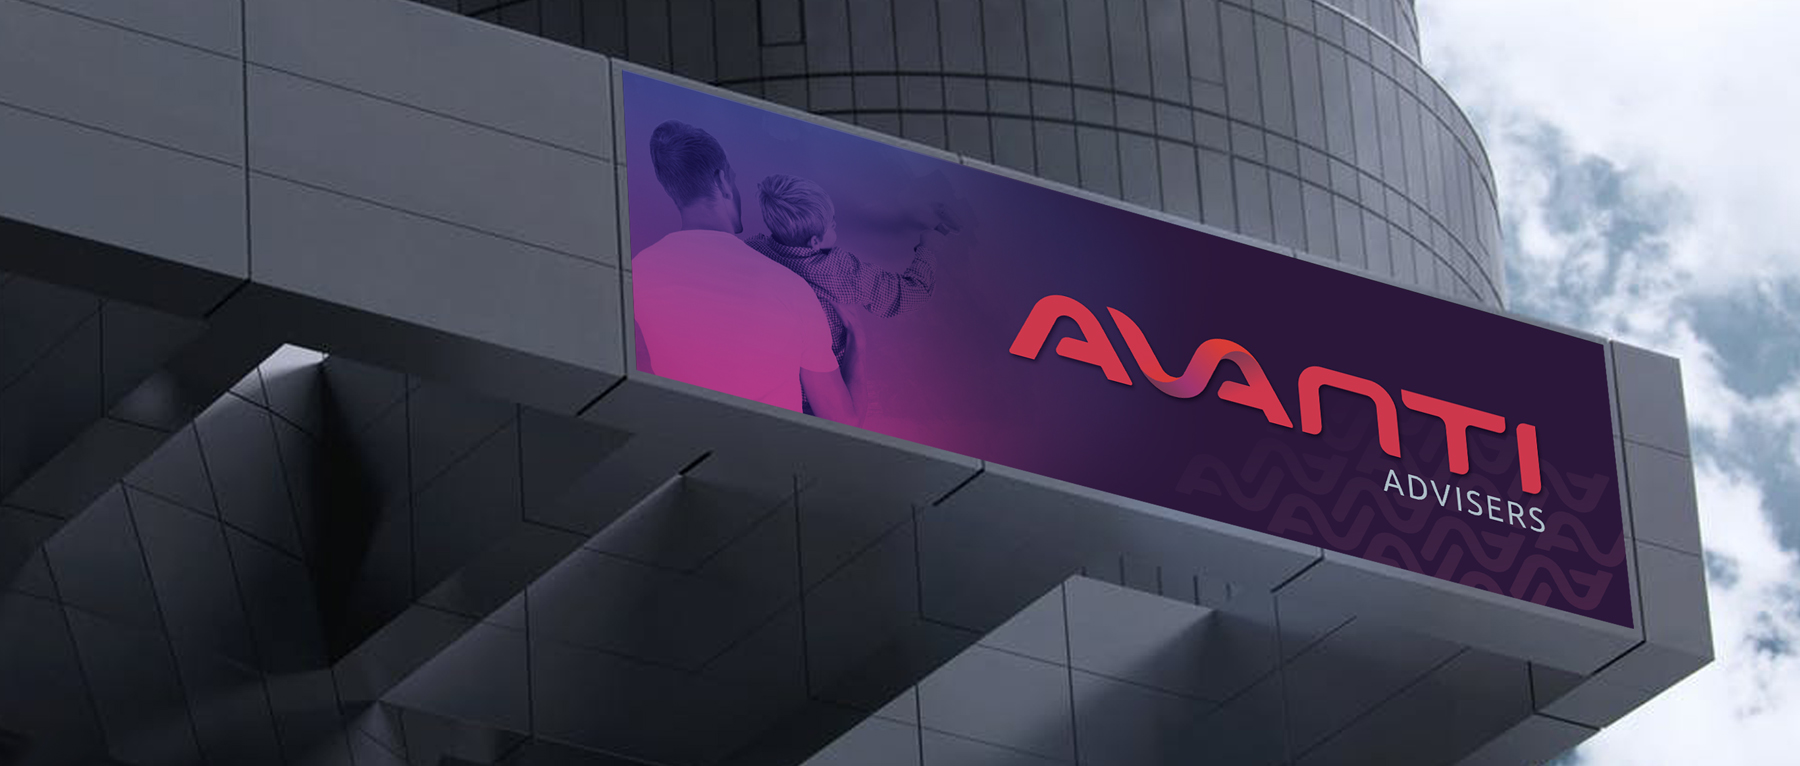 AVANTI Advisers Signage on Grey BuildingSiganage